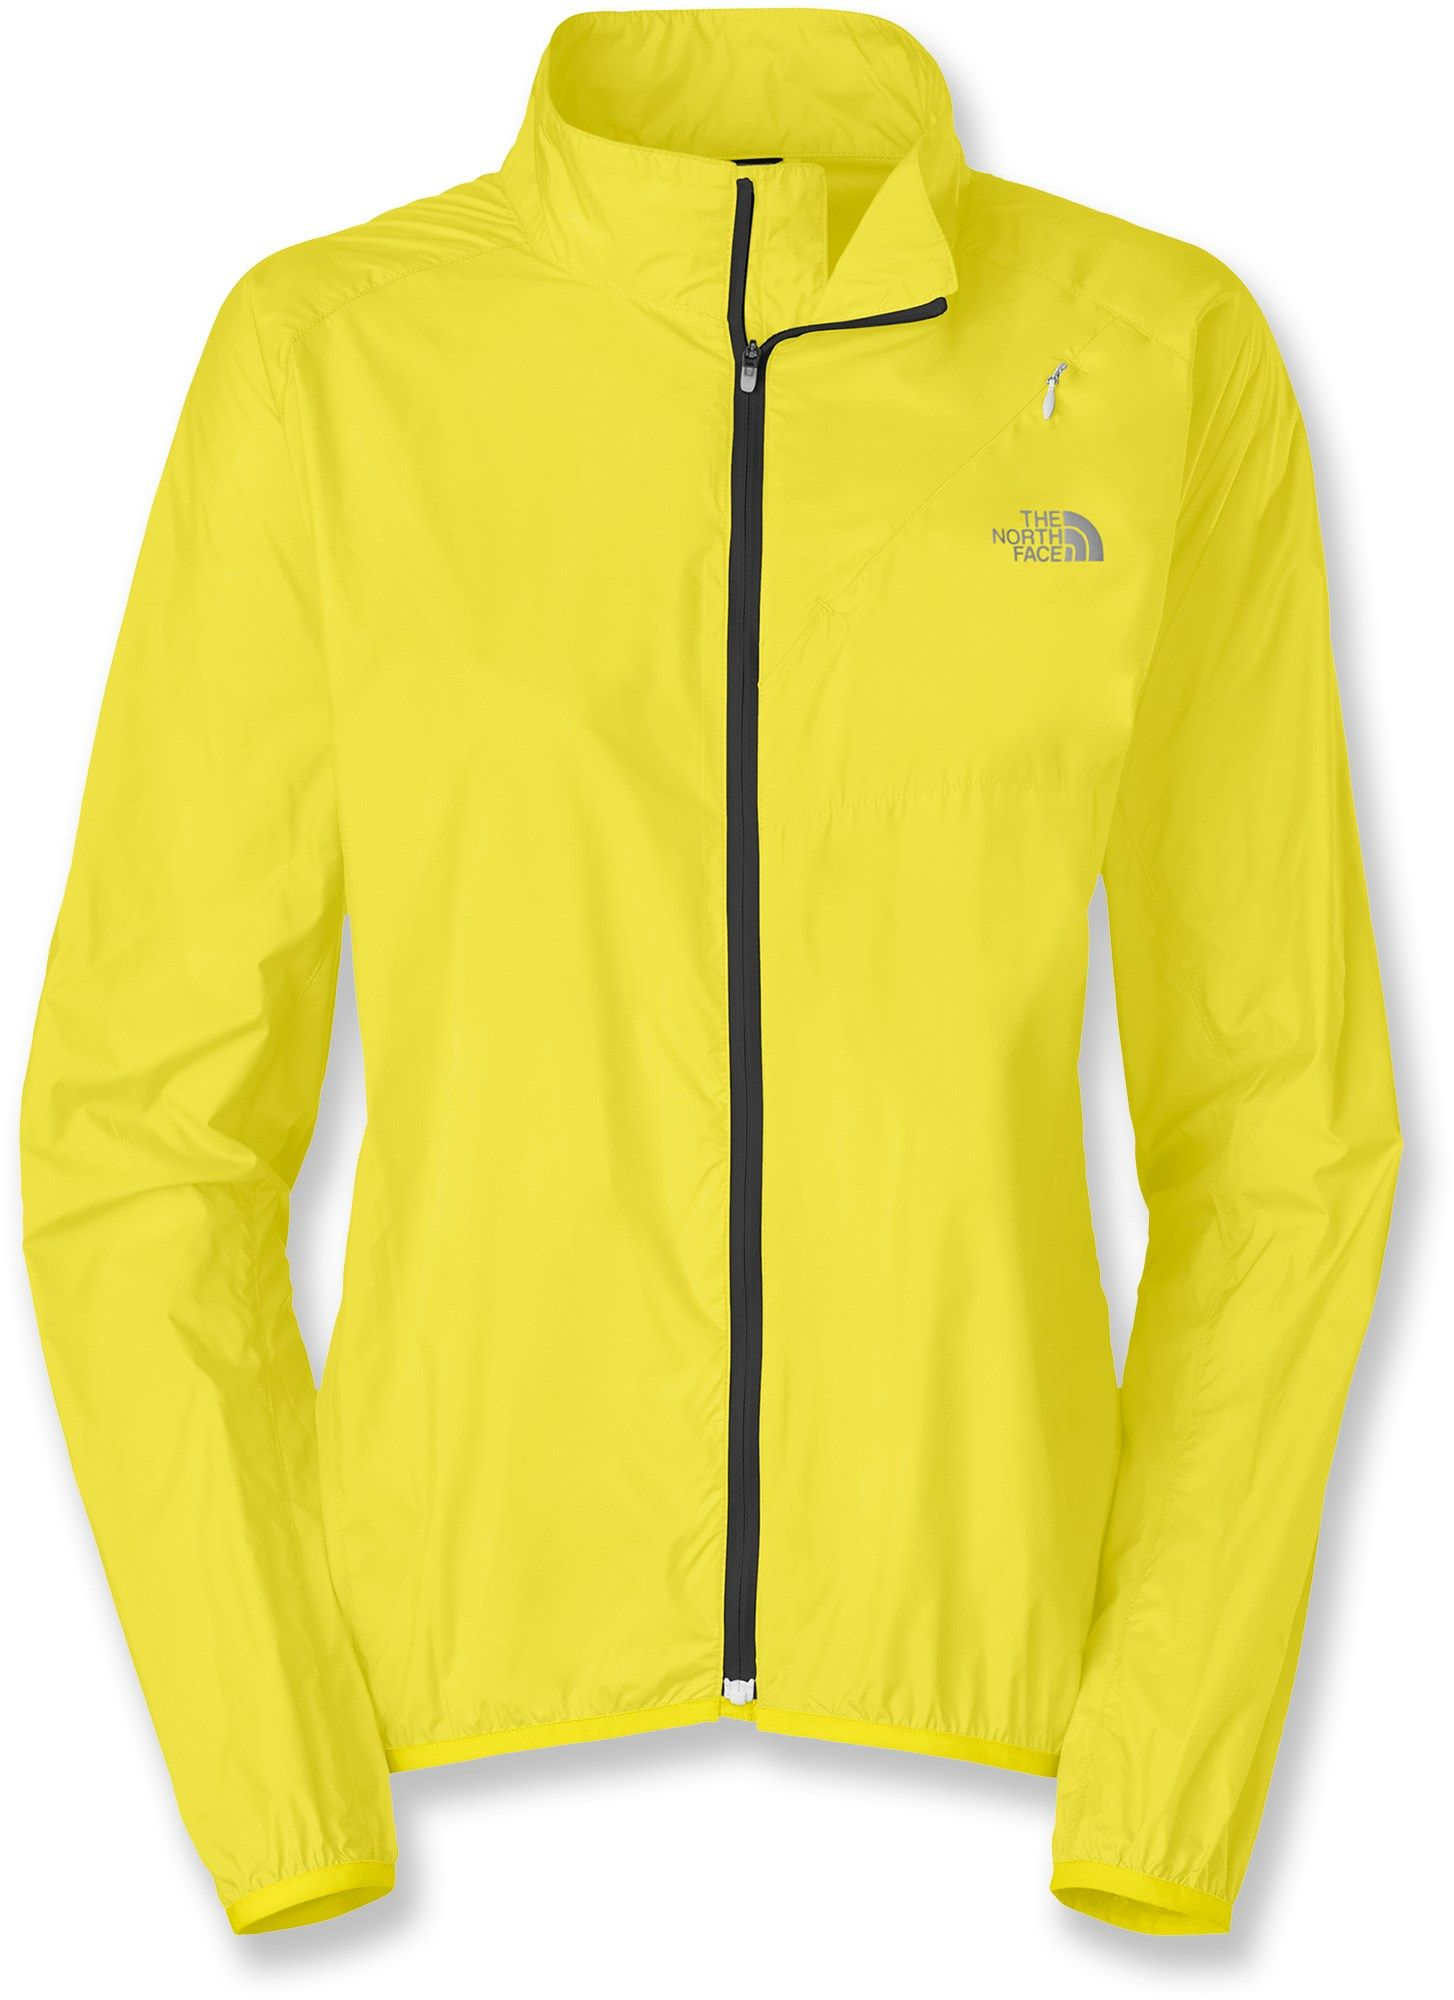 The North Face Crestlite Bike Jacket Women S Free Shipping At Rei Com North Face Hyvent Jacket North Face Jacket Jackets [ 2000 x 1454 Pixel ]